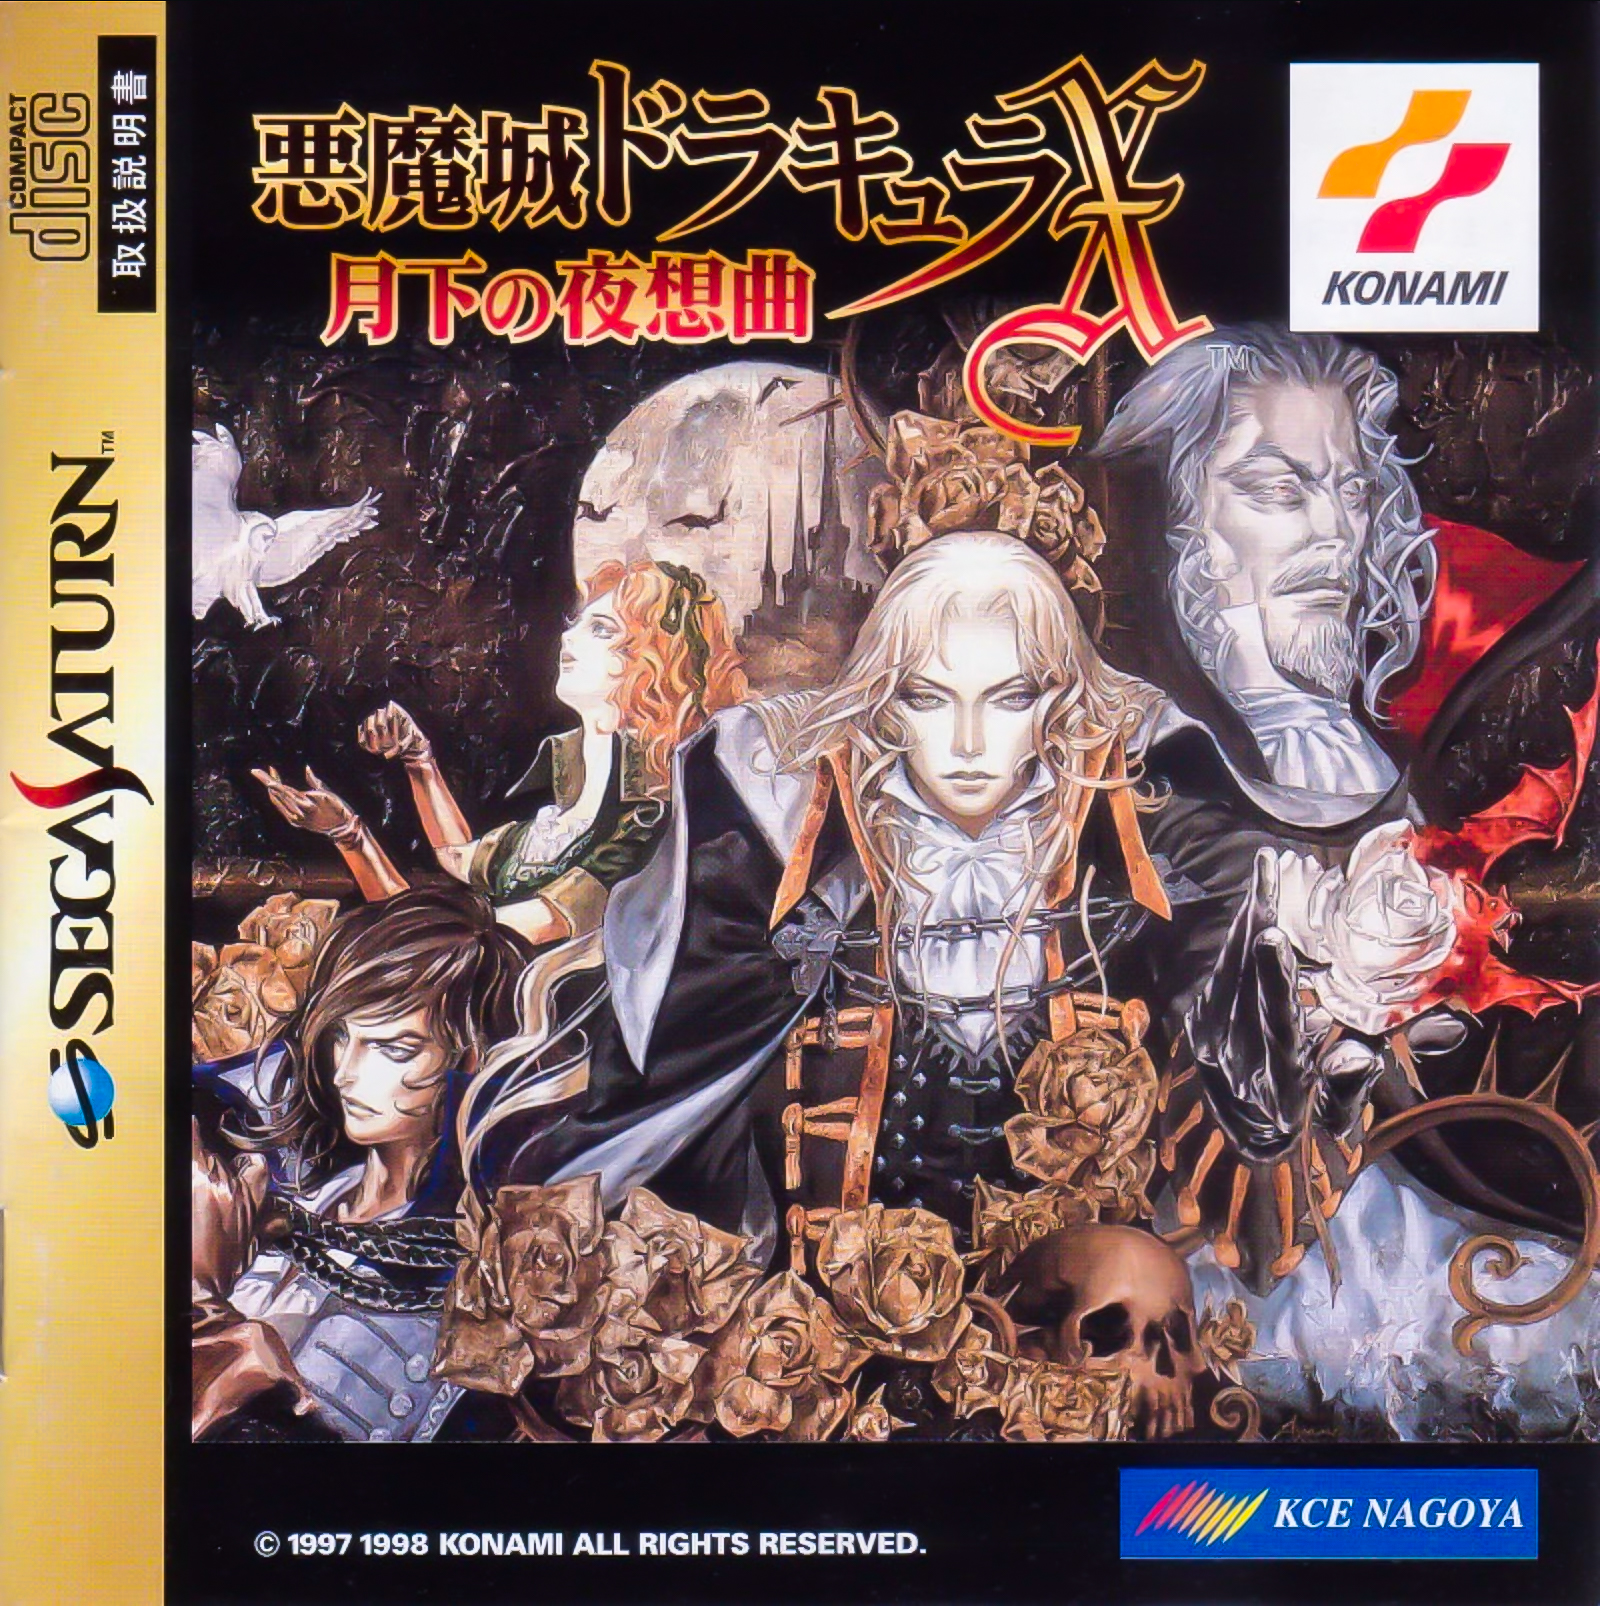 New Saturn Castlevania SOTN Improvement Hack Utilizes The 4MB RAM Cart For Fast Loading, Smoother Animations, And More.